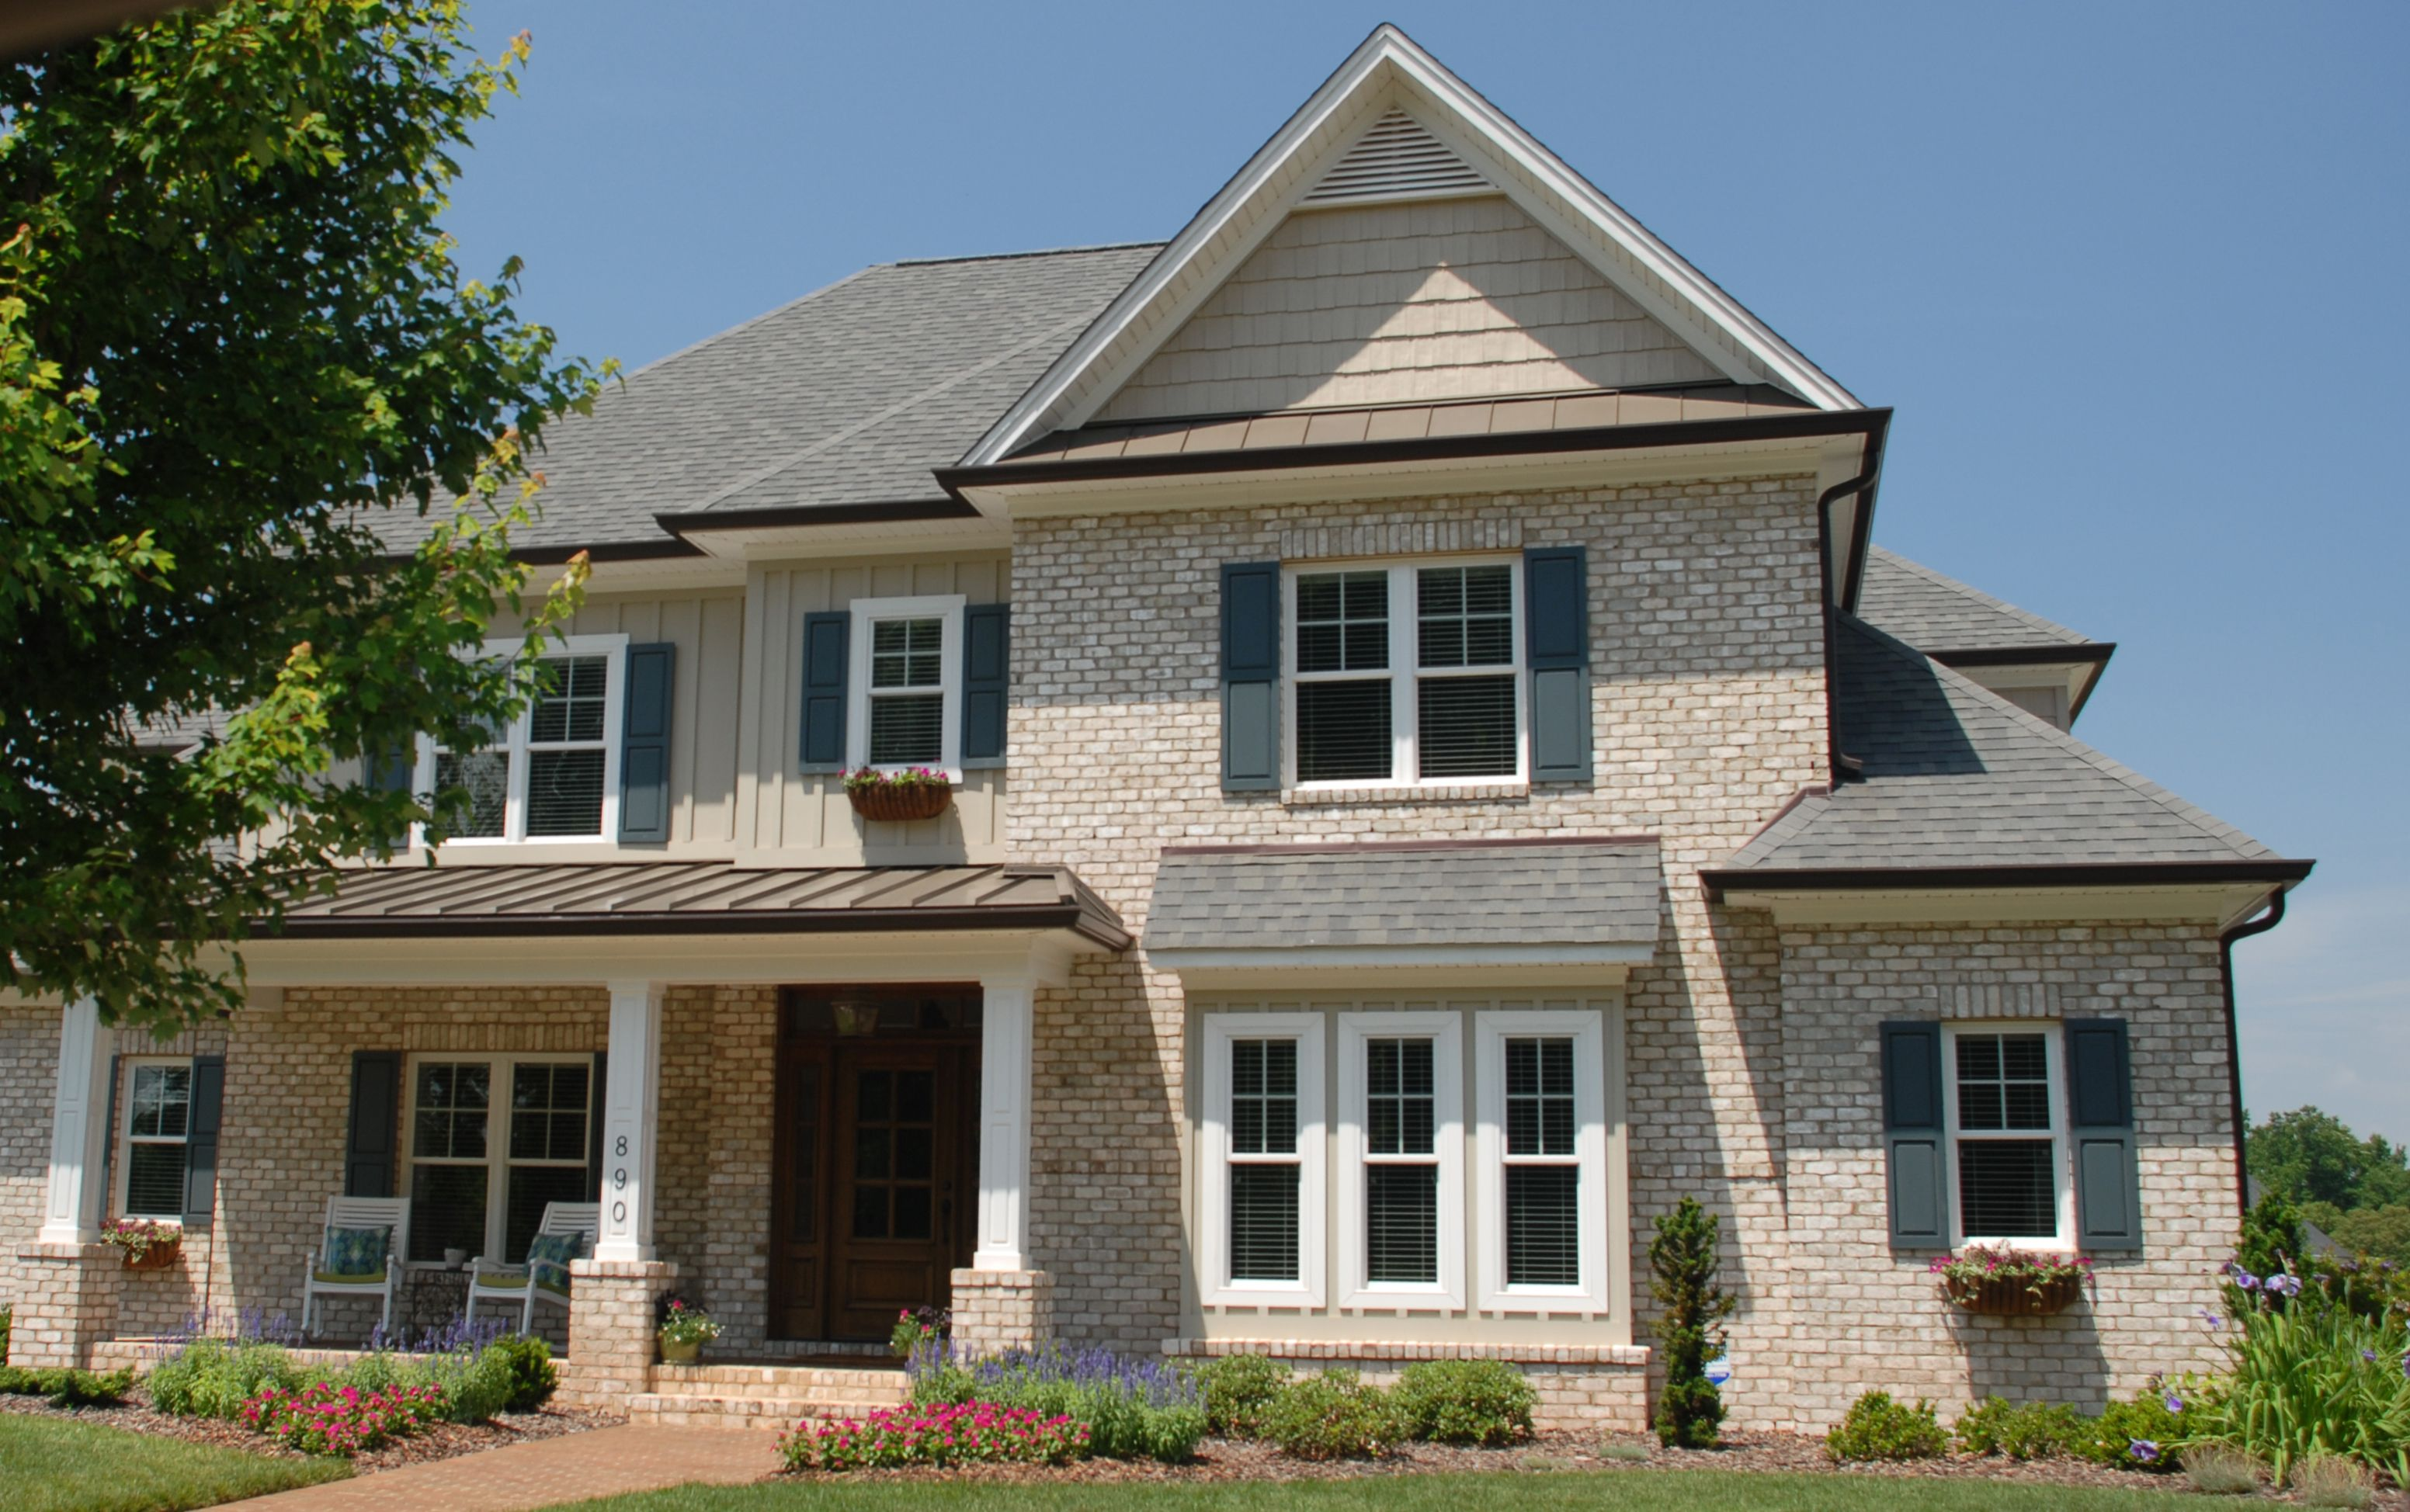 Chesapeake Pearl Oversize Tumbled Tidewater Pine Hall Brick - Stained exterior shutters